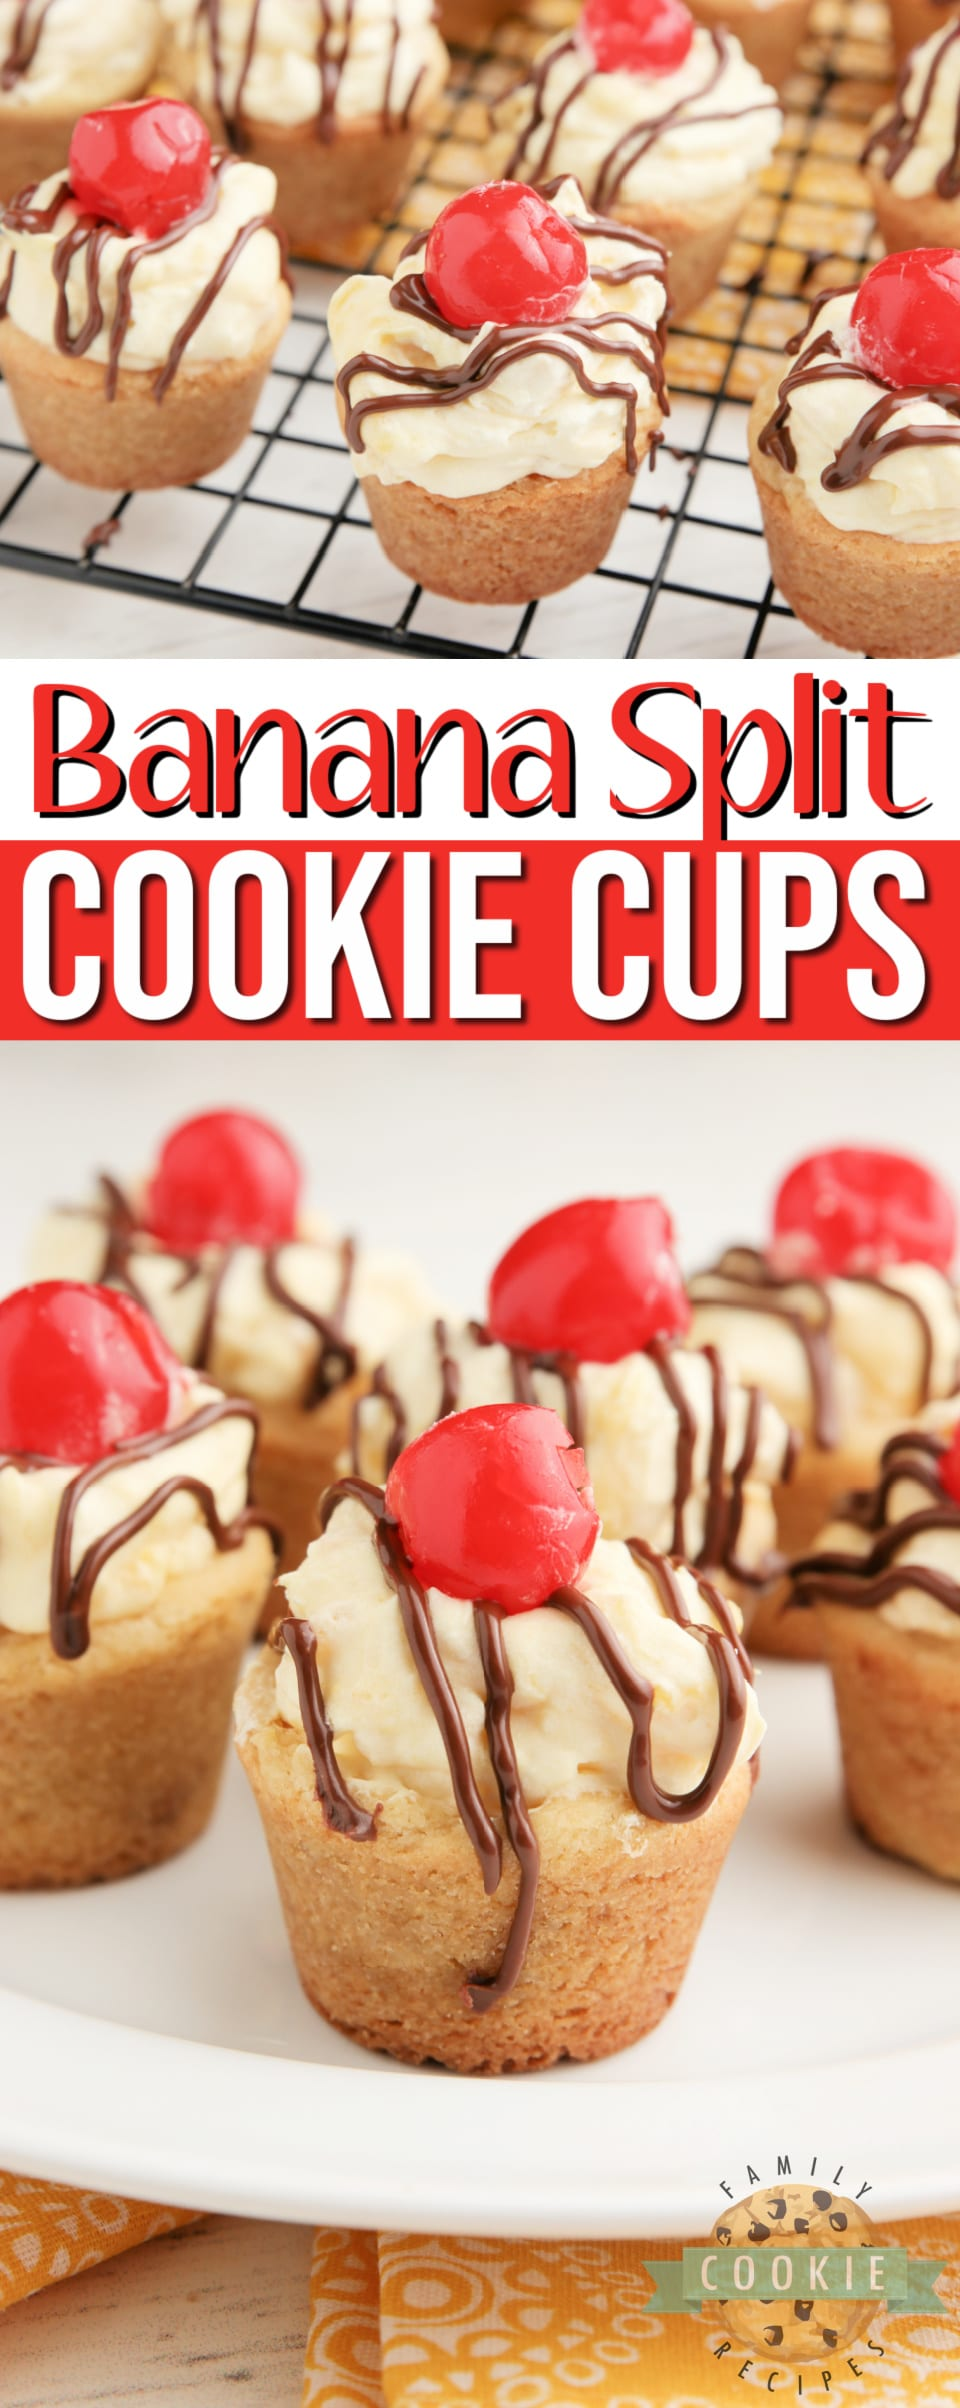 Banana Split Cookie Cups taste like your favorite banana split dessert in cookie form! Banana flavored cookies filled with pineapple cream and topped with chocolate and a cherry! via @buttergirls